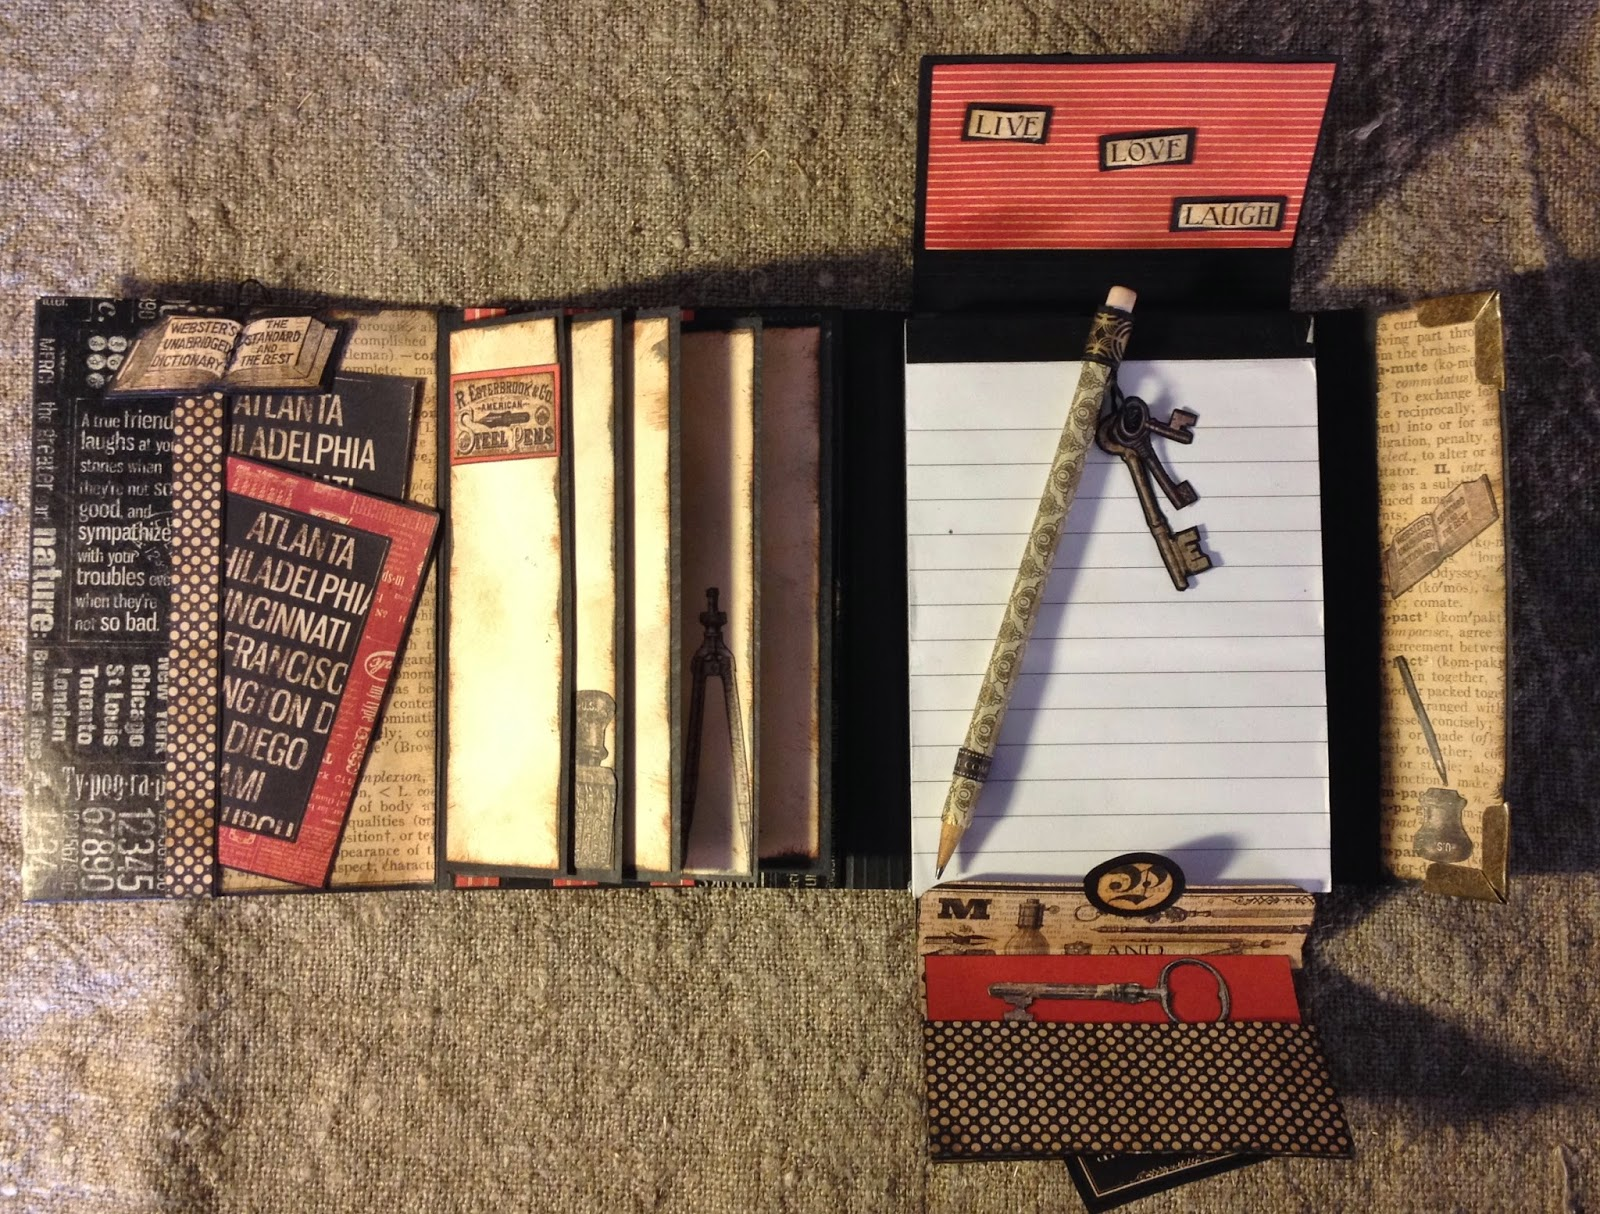 Annes Papercreations Graphic 45 Typography Folio Journal